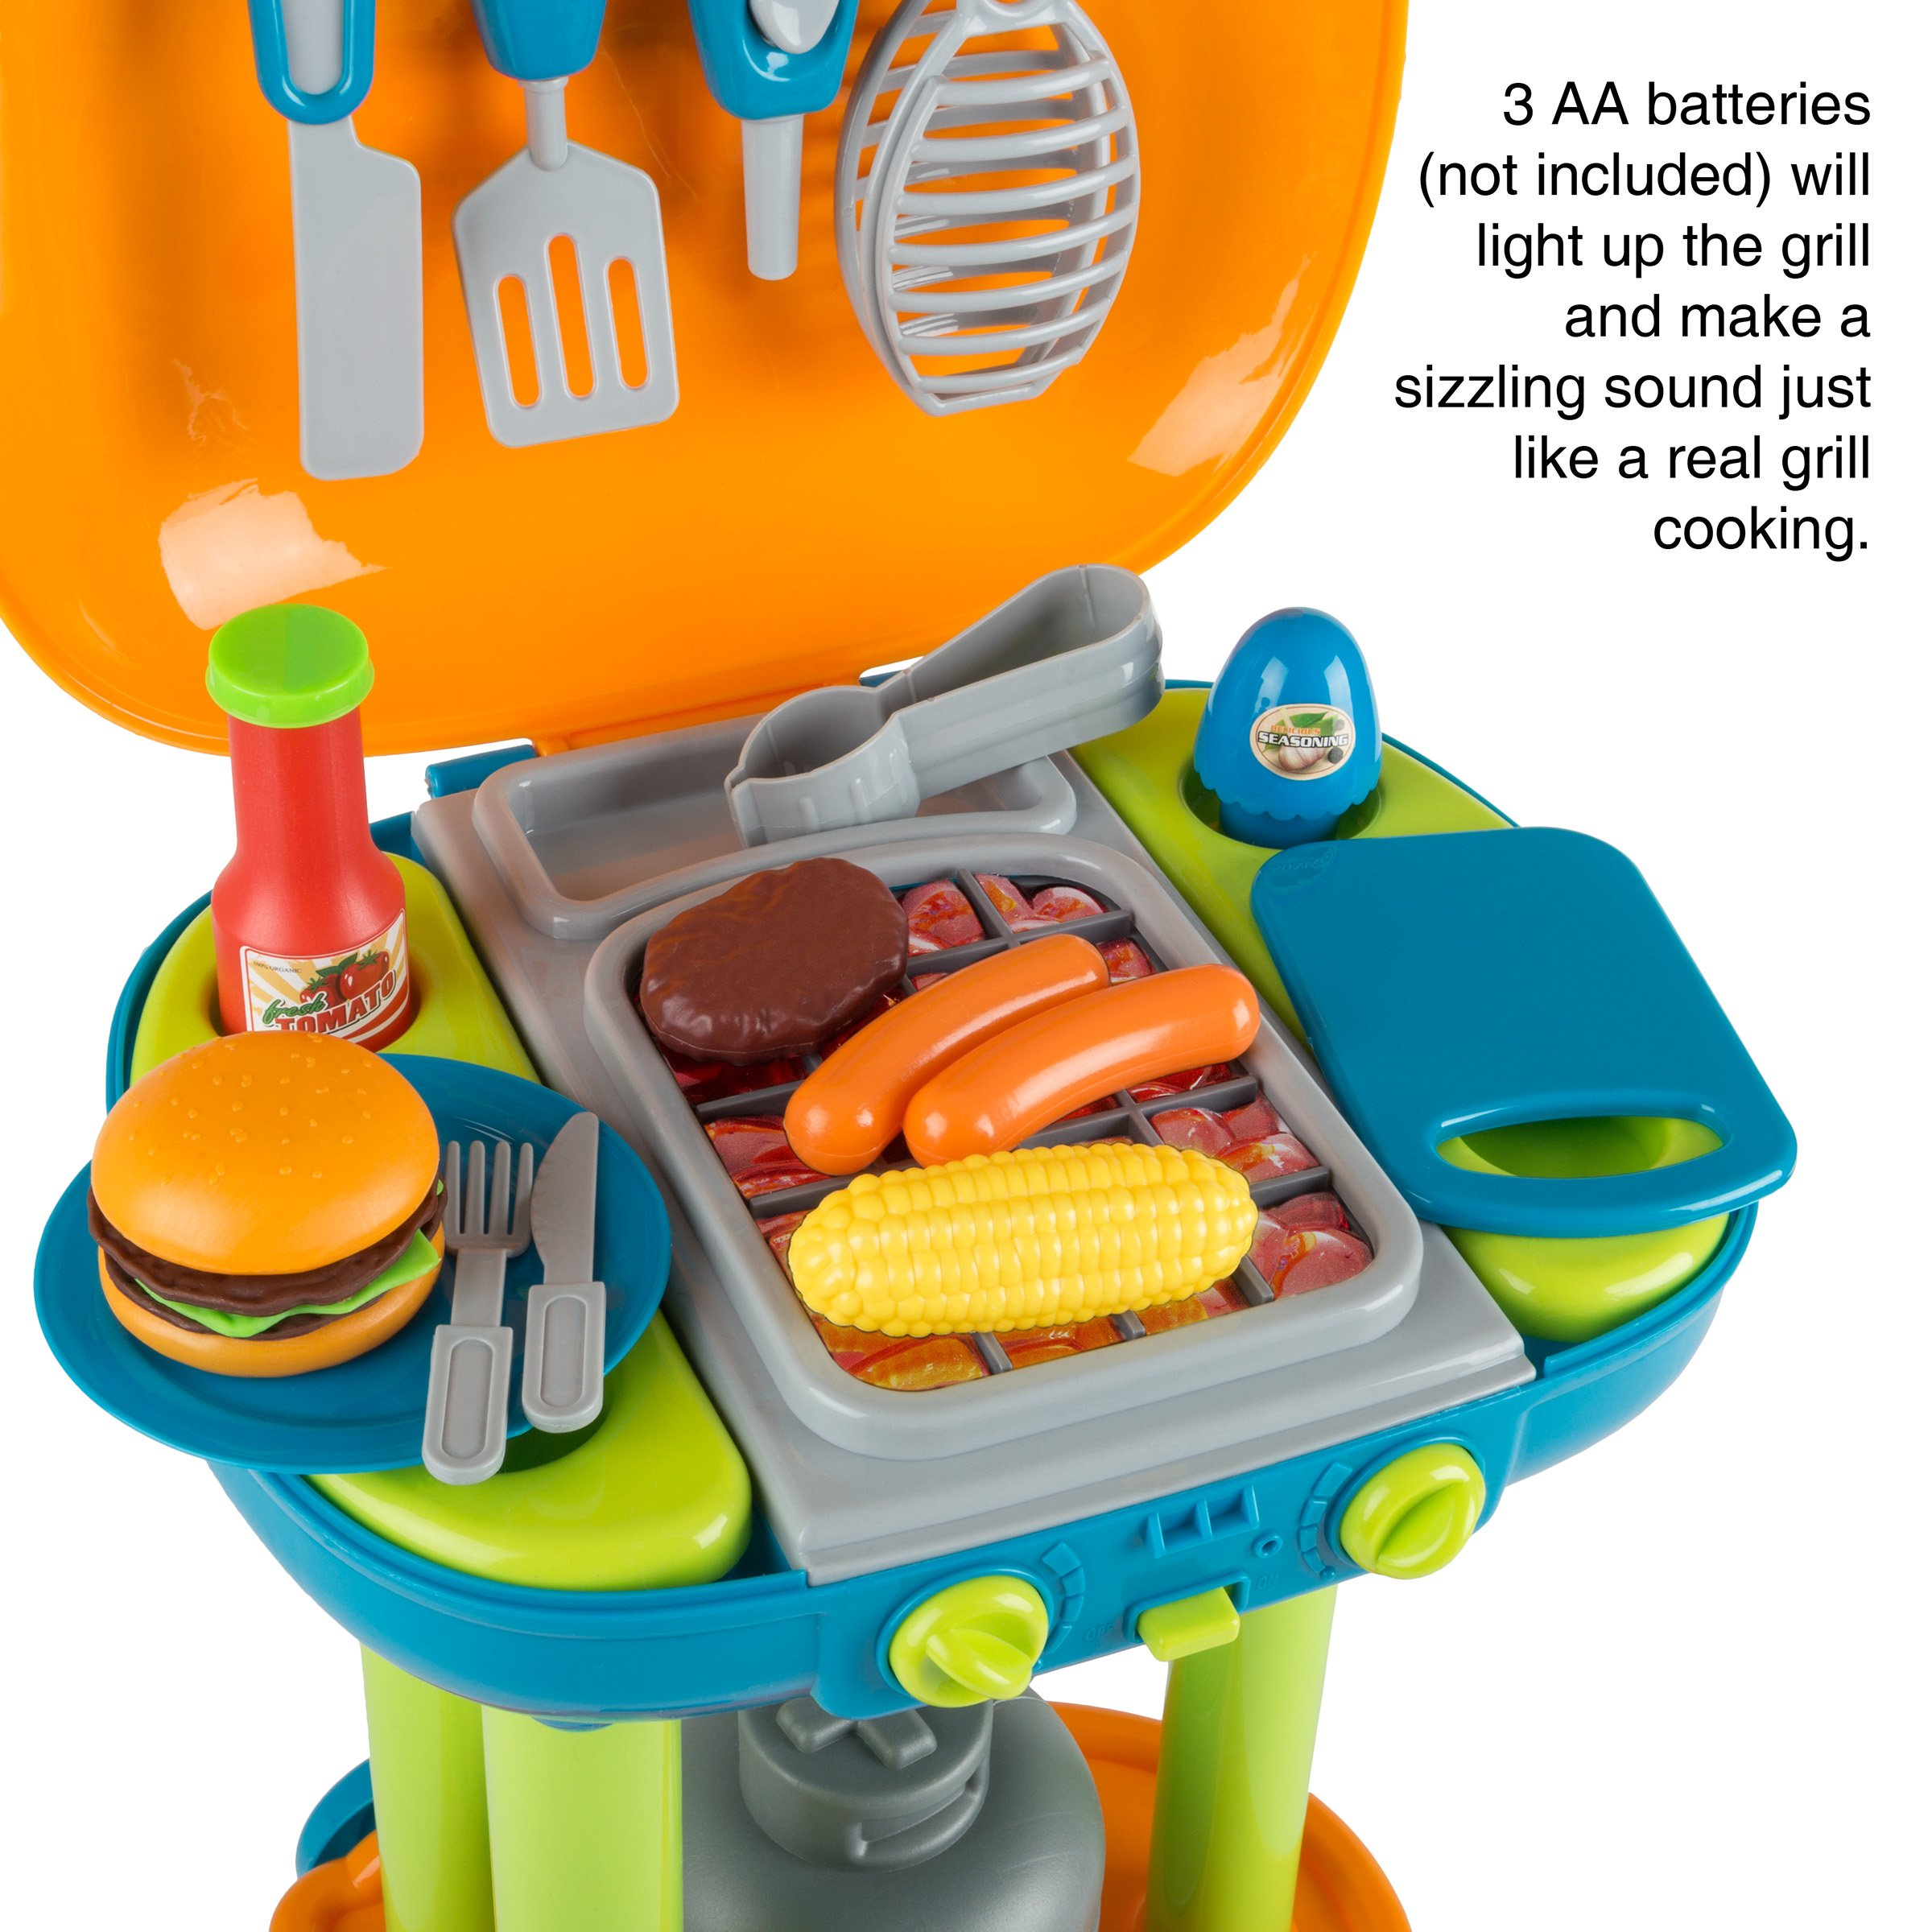 BBQ Grill Toy Set- Kids Dinner Playset with Realistic Sounds and Grate Lights- Includes Barbecue Food and Accessories, Pretend Kitchen by Hey! Play! (Image #3)